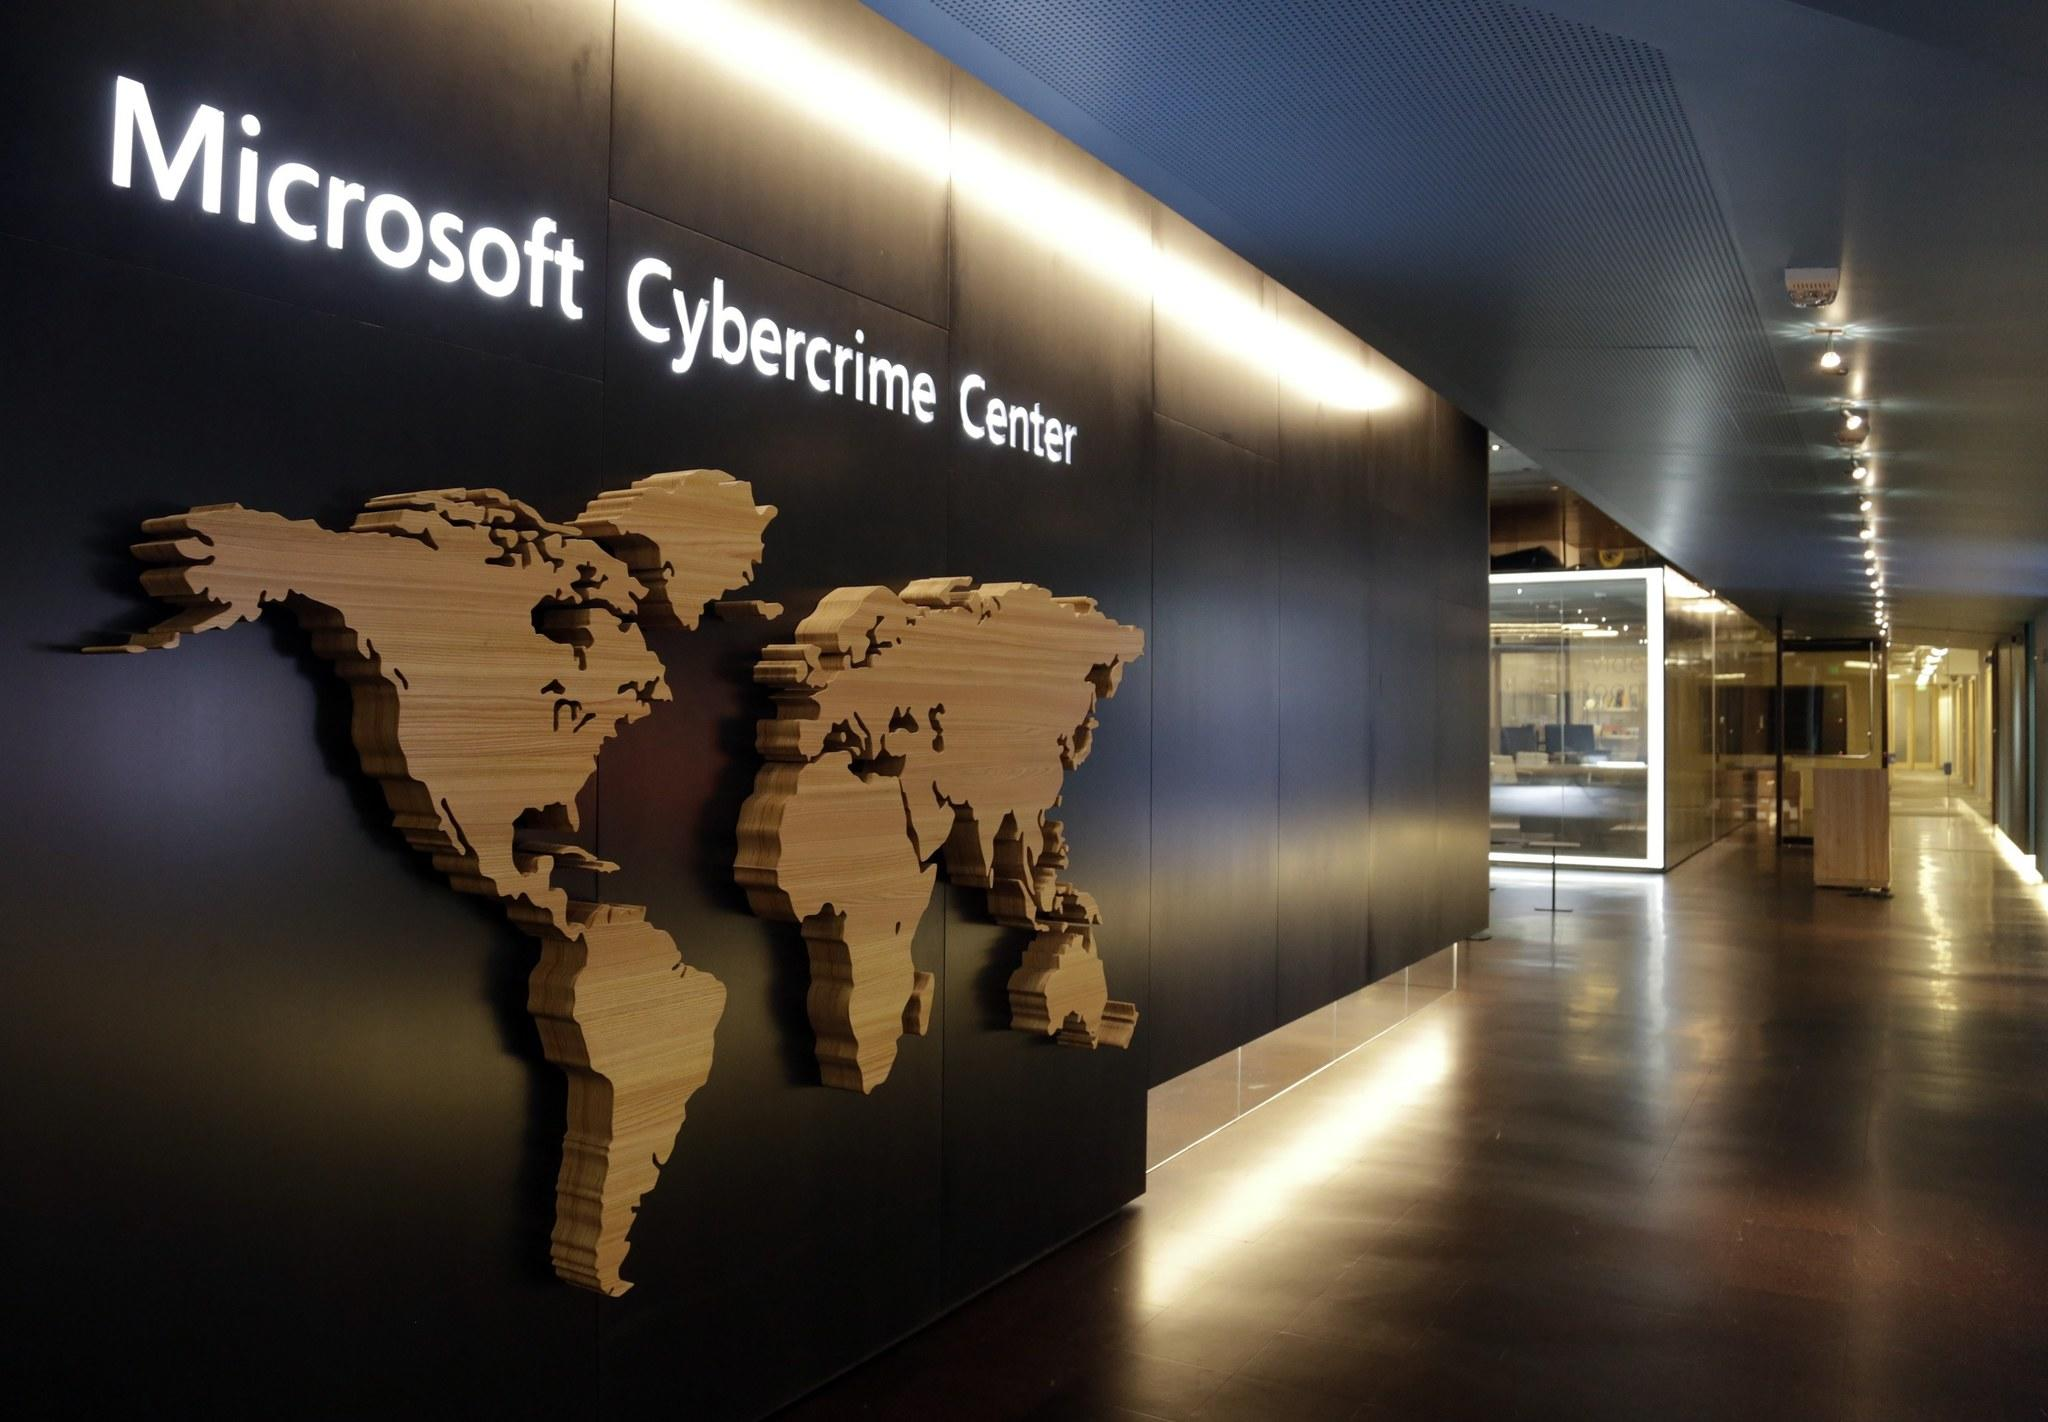 A sign is pictured in the hallway of the Microsoft Cybercrime Center, the new headquarters of the Microsoft Digital Crimes Unit, in Redmond, Wash.